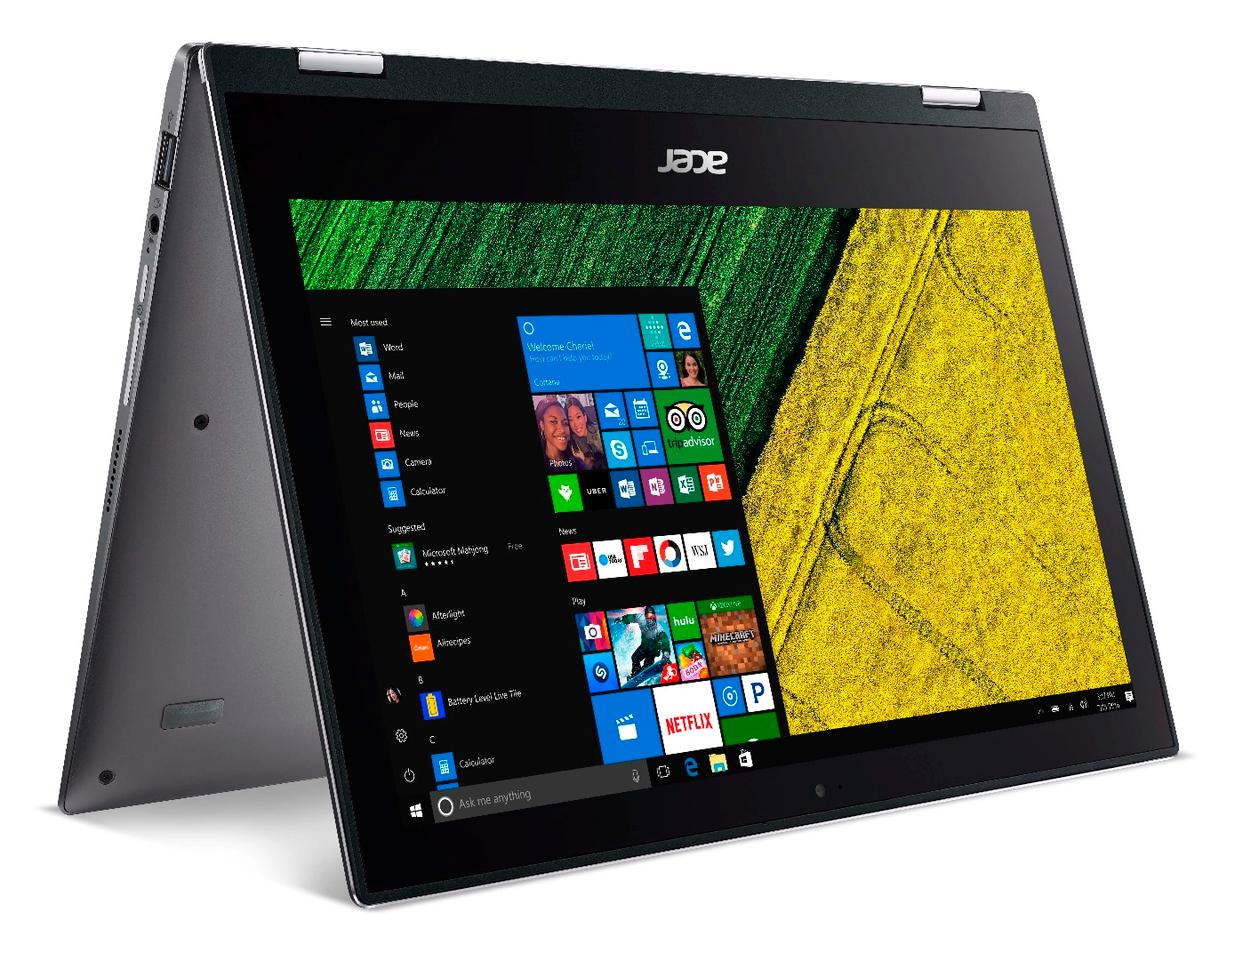 The Acer Spin 1 can fold right back on itself into a tent shape, among other configurations